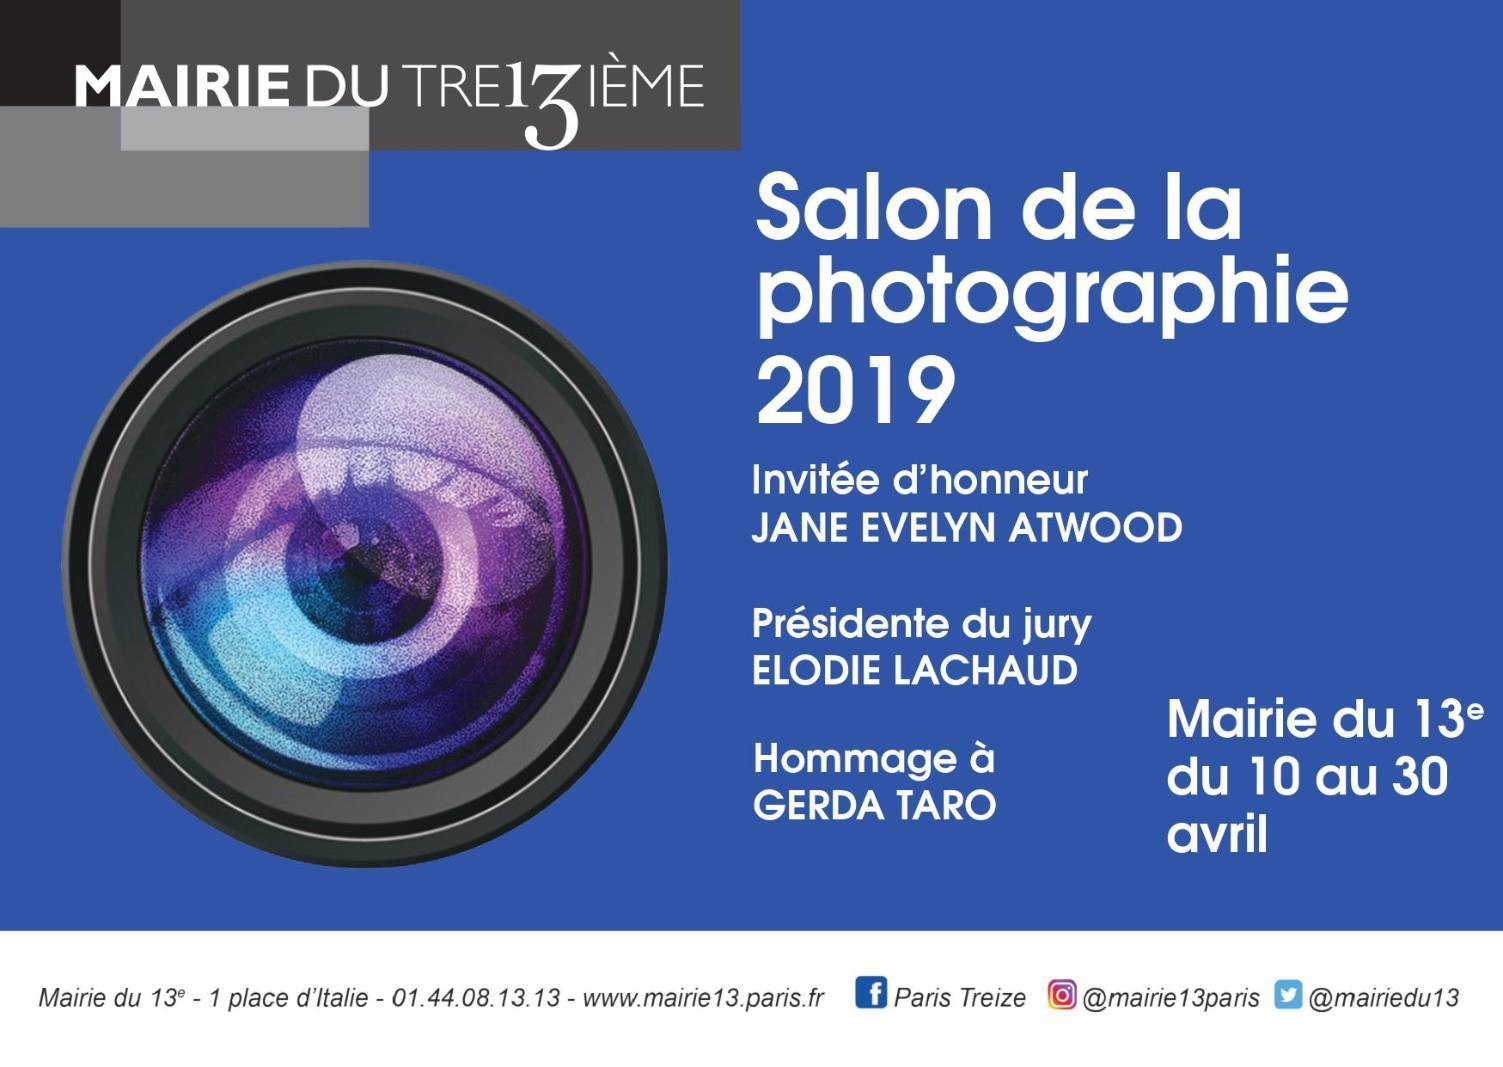 Salon de la photographie 2019 de la mairie de 13e arrondissement de Paris